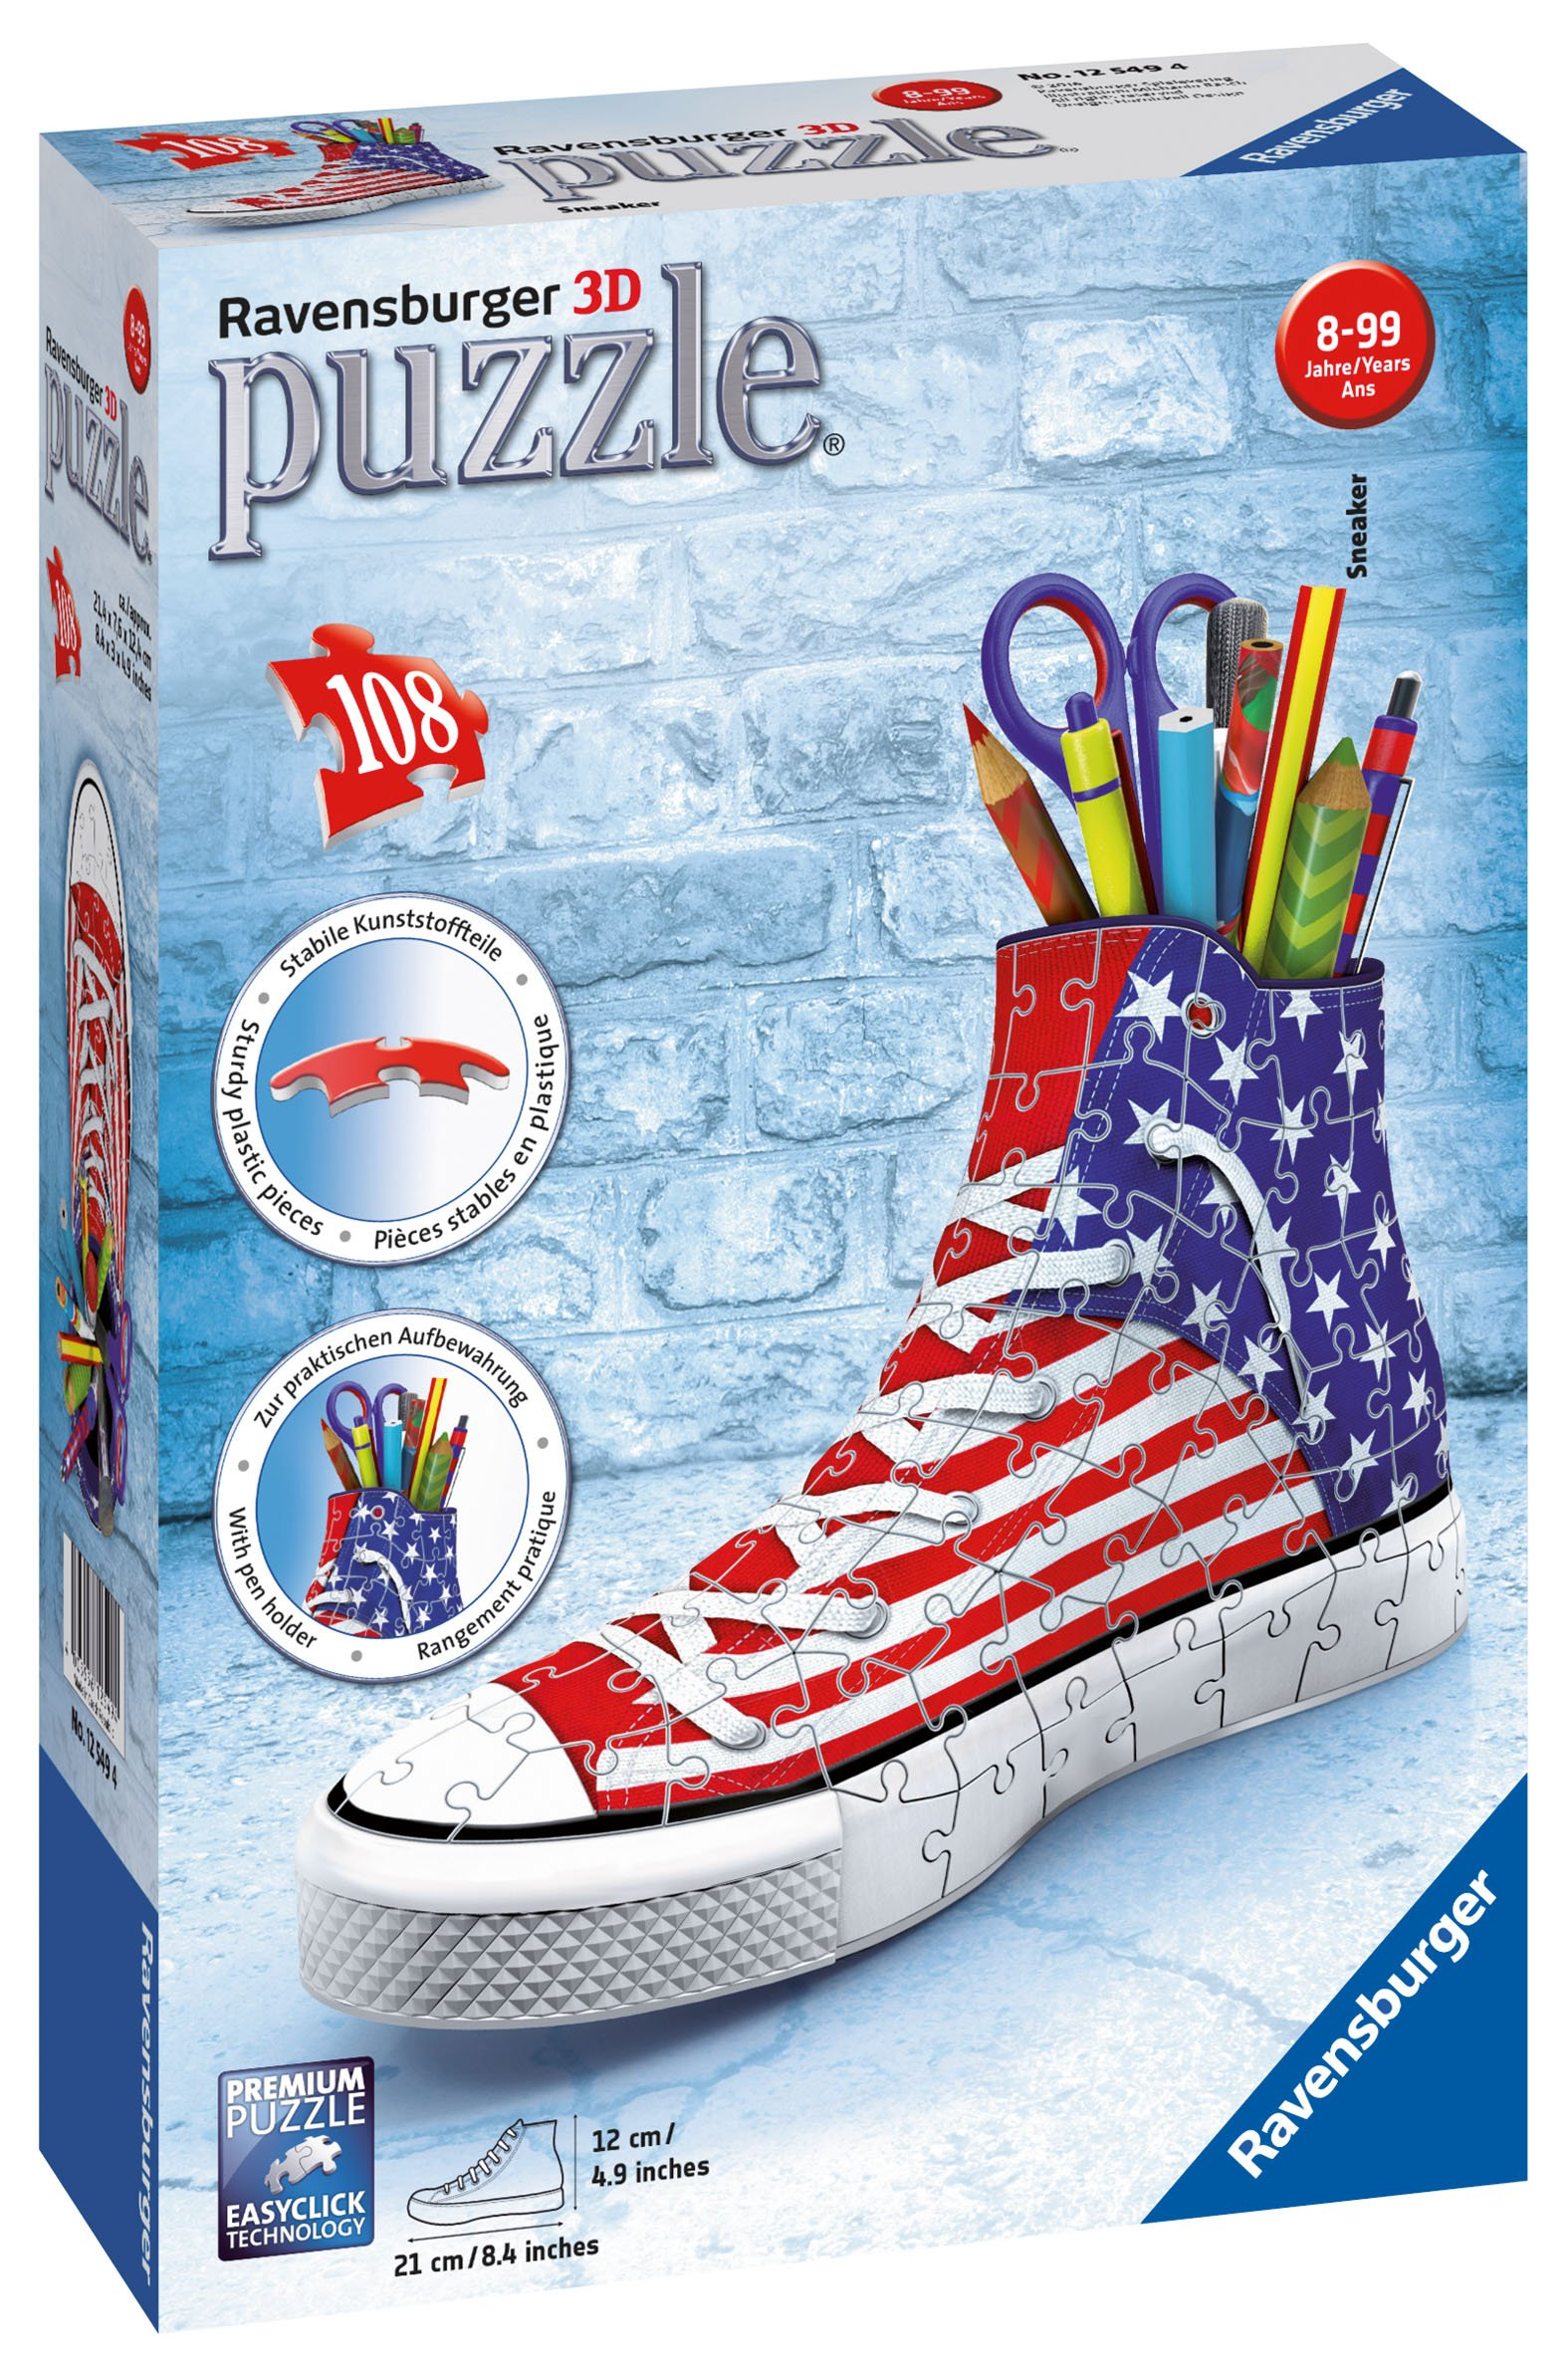 0ba4b1cc9bb Get Quotations · Ravensburger Sneaker American Style 108 Piece 3D Jigsaw  Puzzle for Kids and Adults - Easy Click